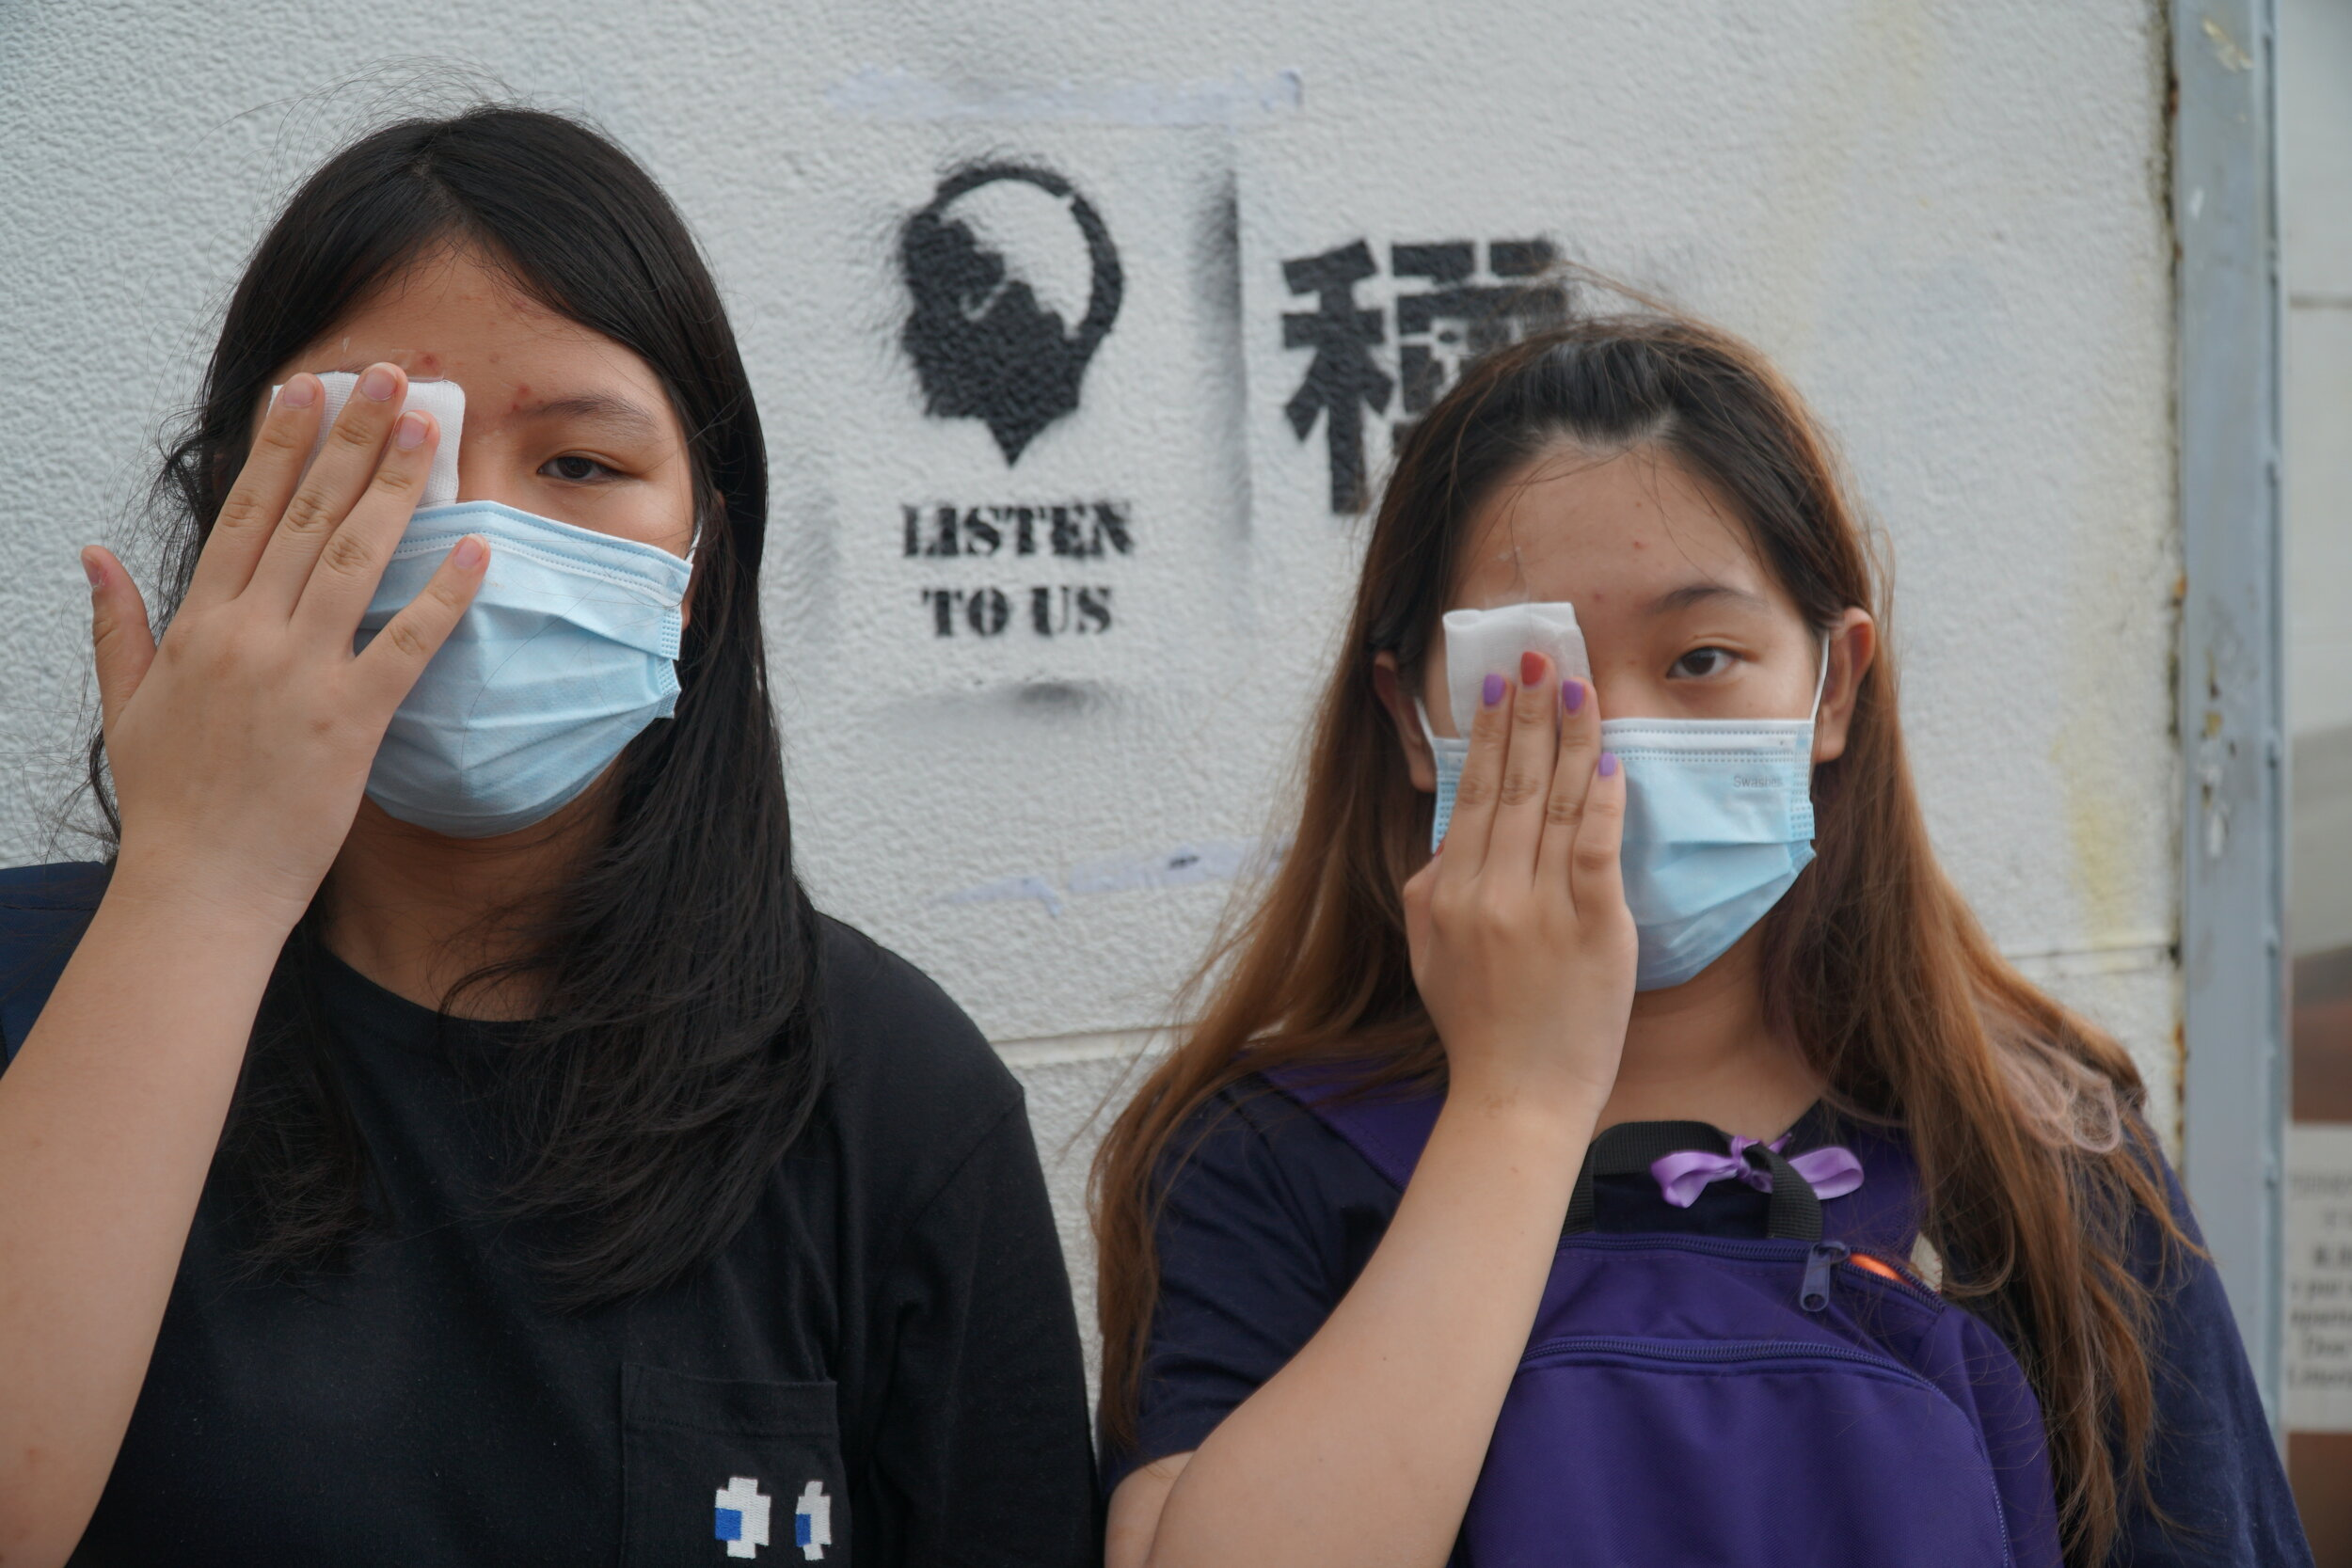 Students wear eye patches to show respect for a nurse who lost her eye during the protests